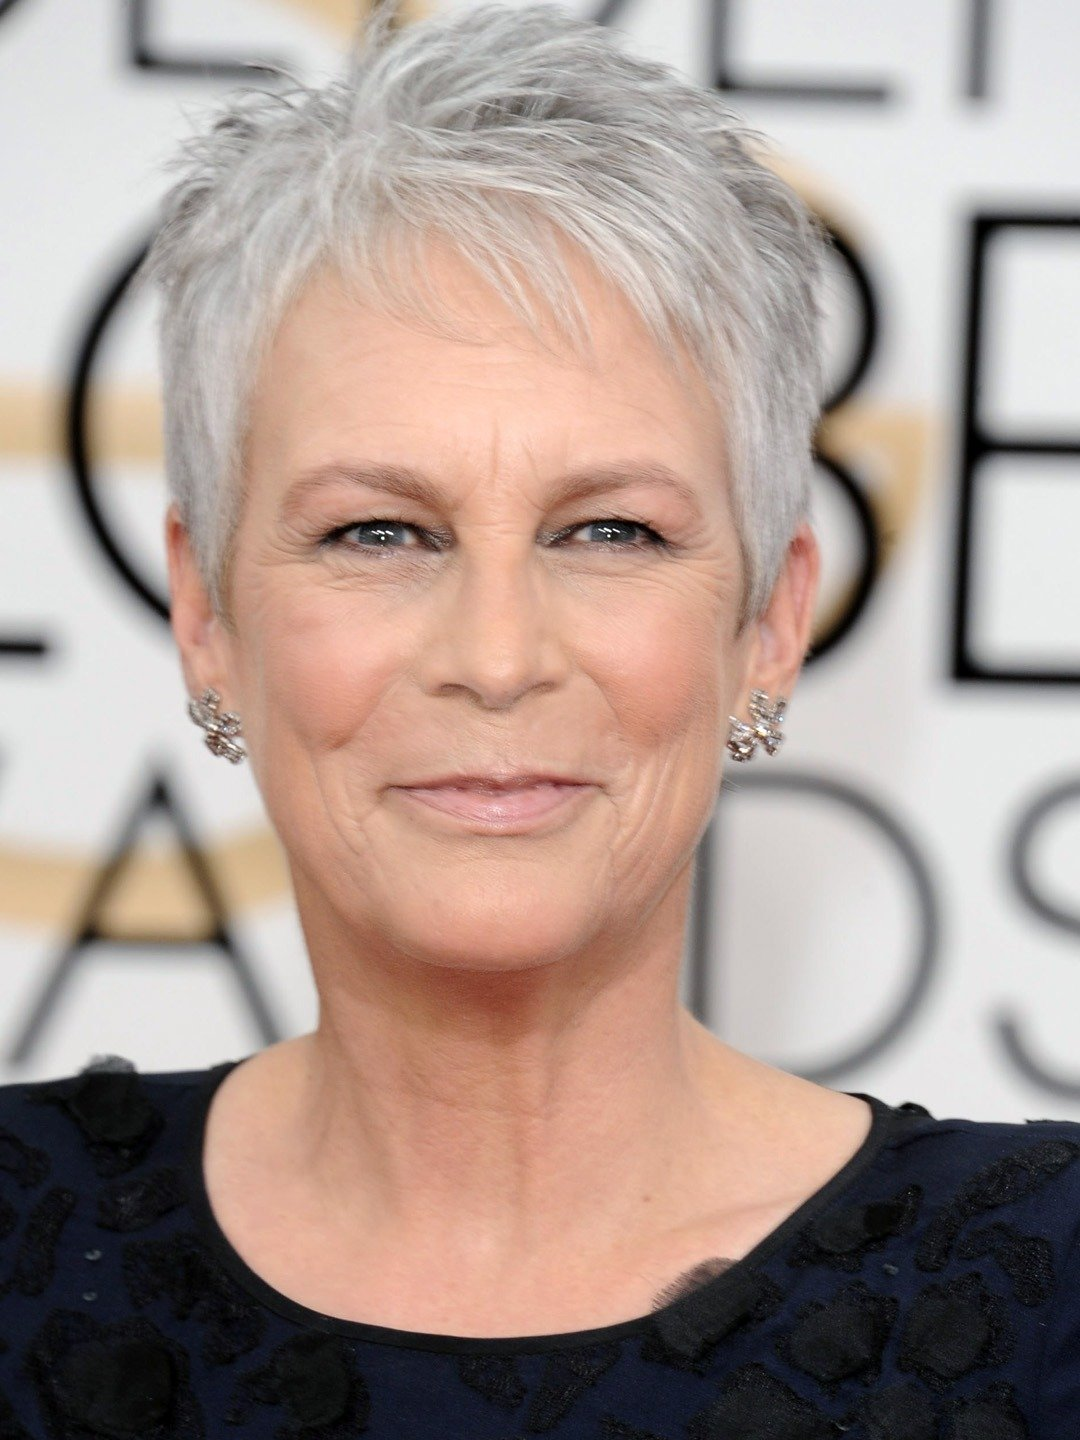 Happy 60th birthday to Jamie Lee Curtis